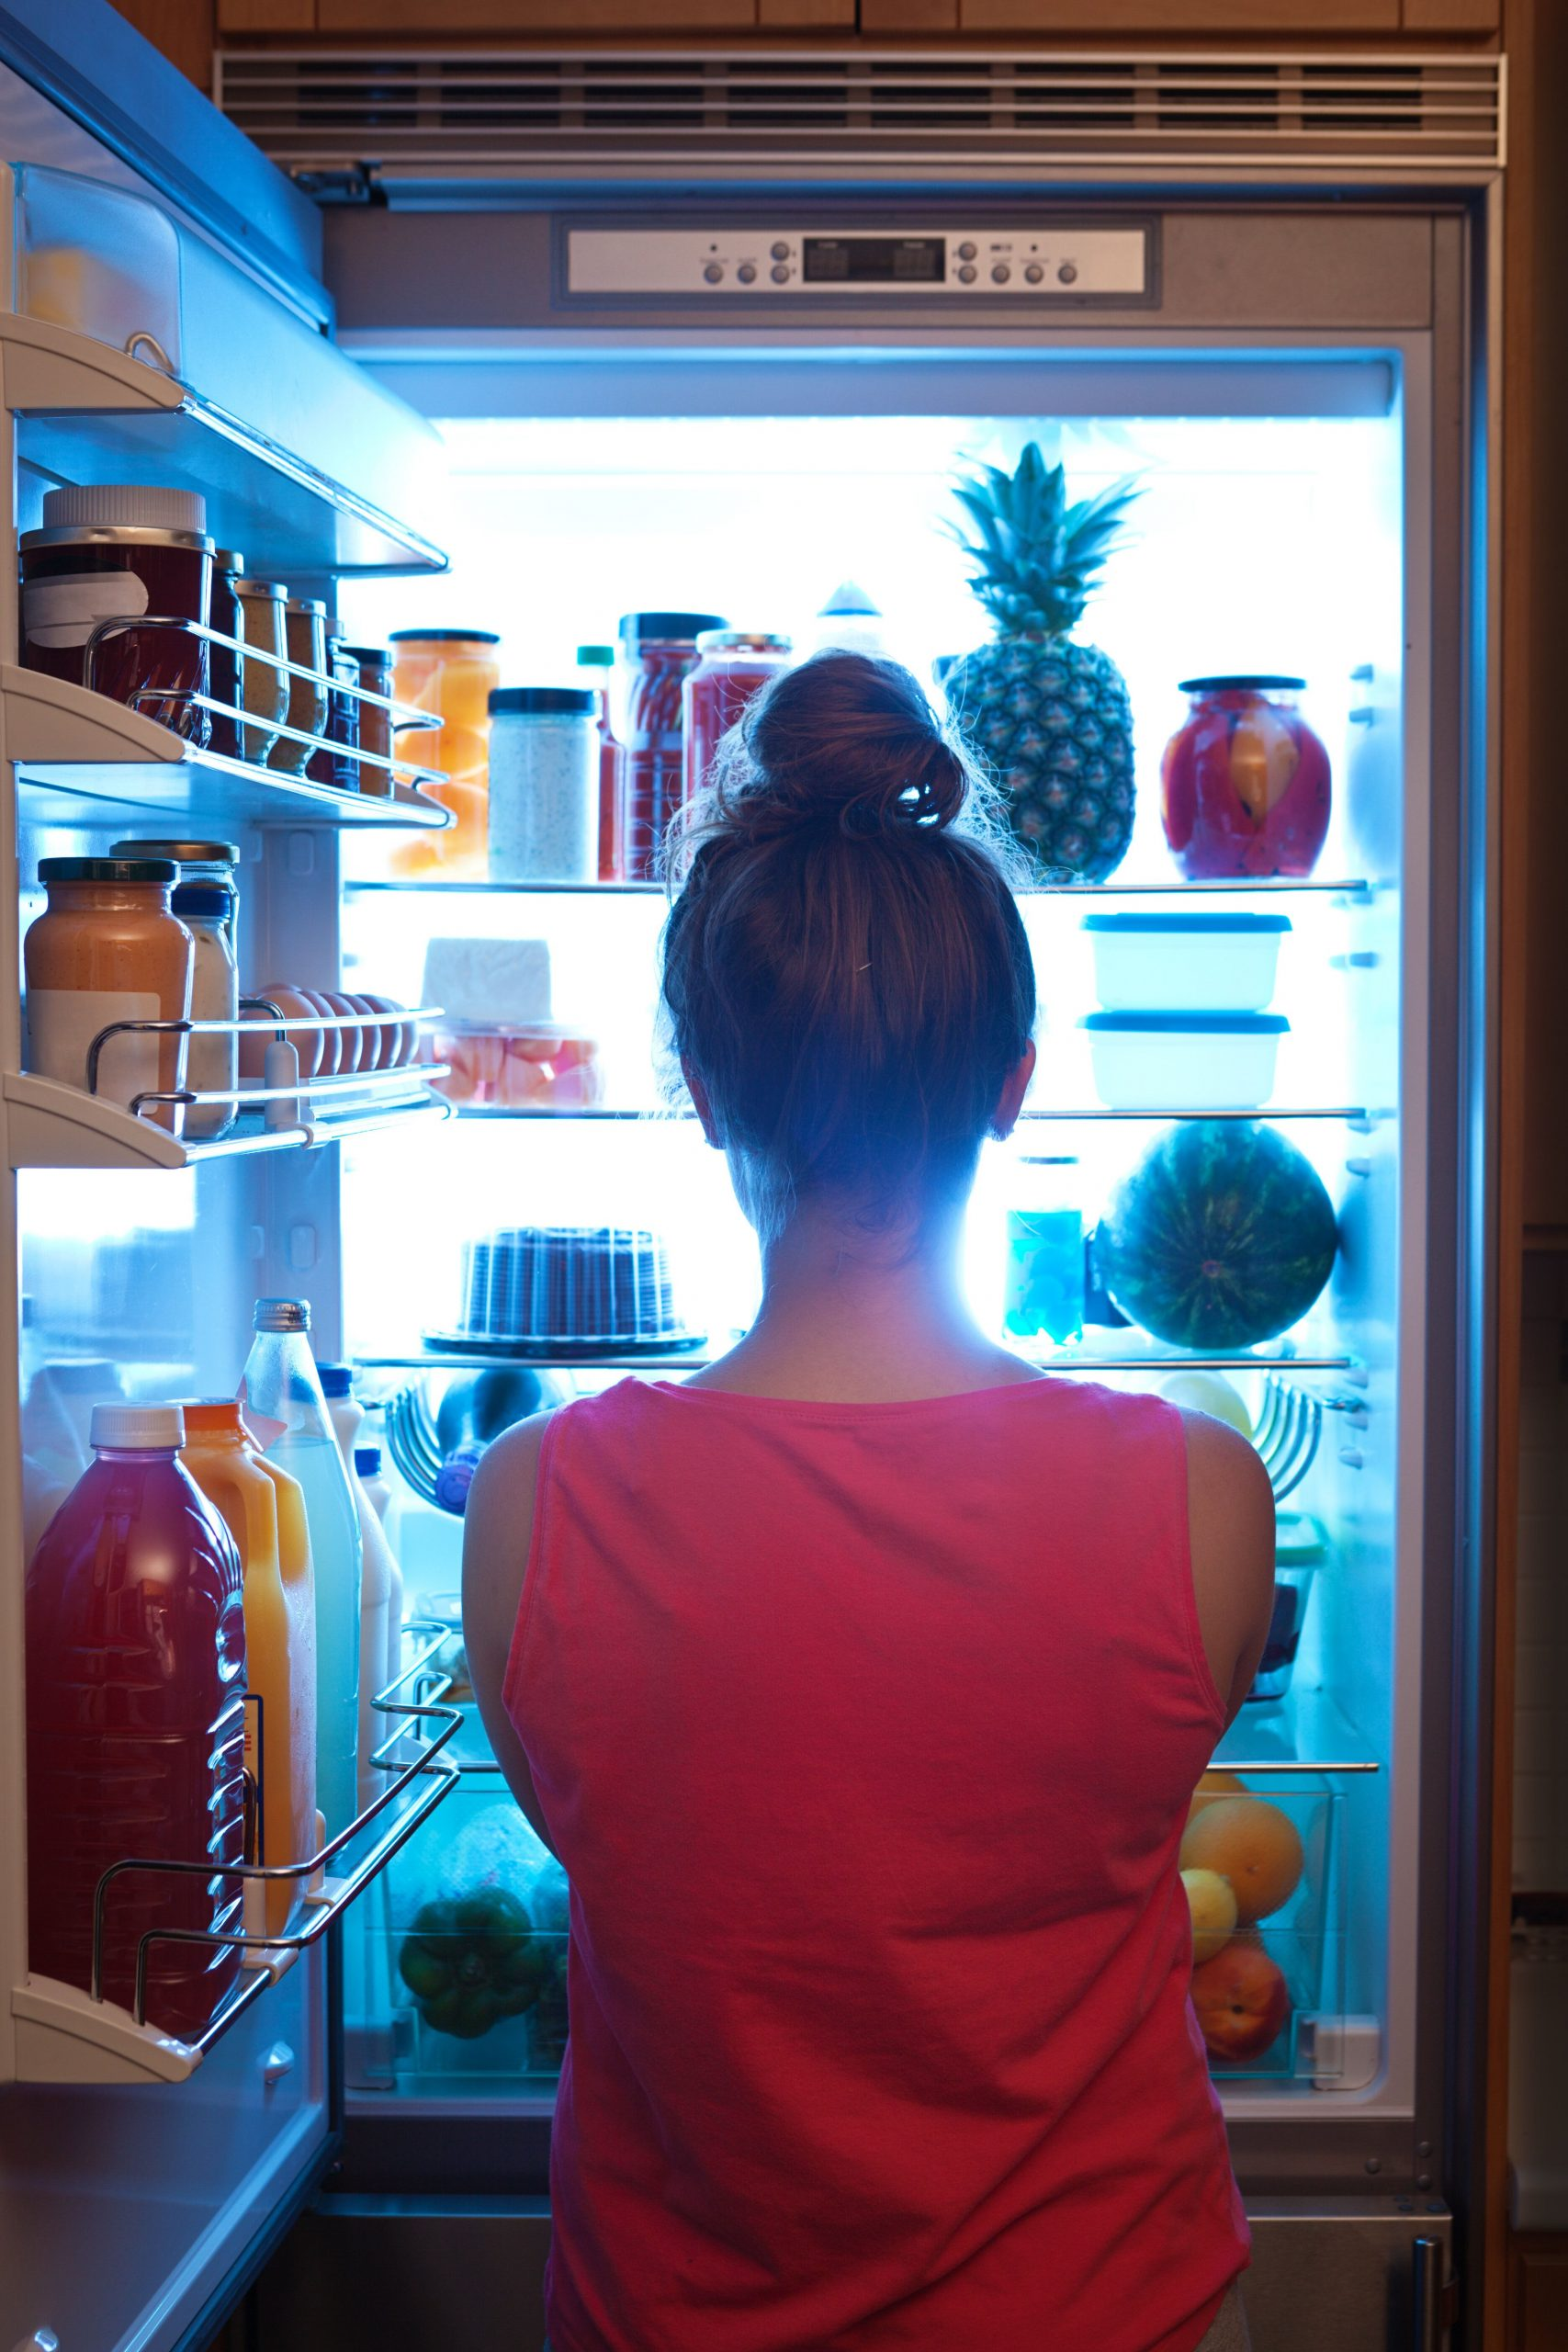 Waking up with a grumbling stomach? Experts say it's worth getting to the bottom of your late-night hunger.